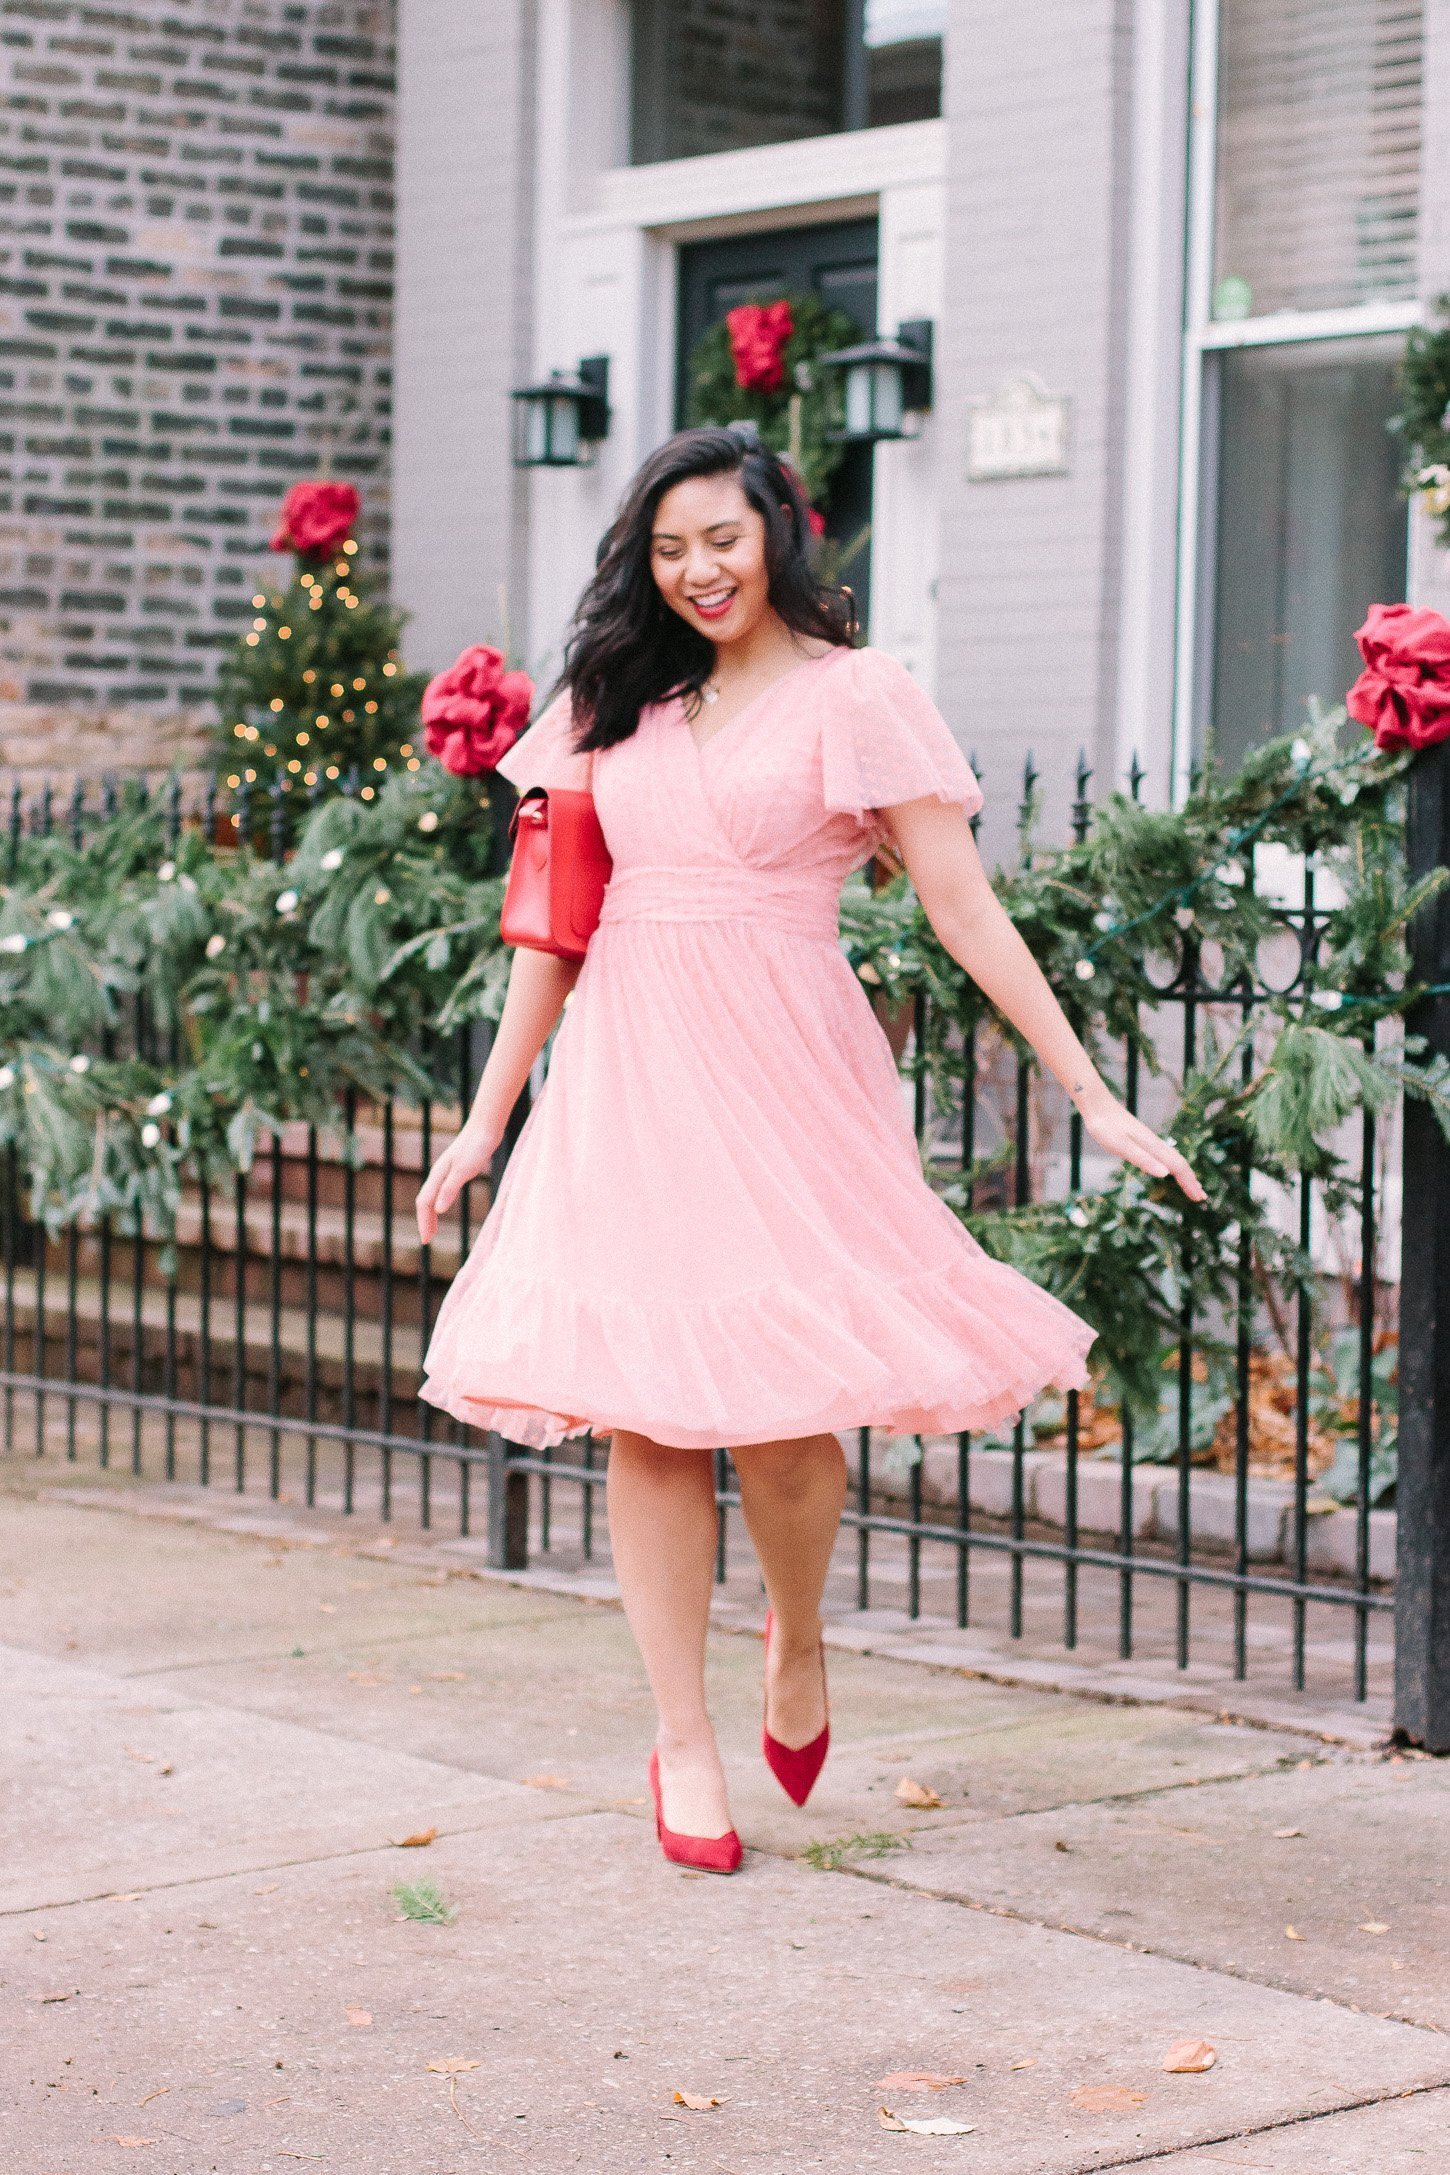 0d7f7ac1593e The Most Darling Holiday Dress For The Girly Girl - RD's Obsessions